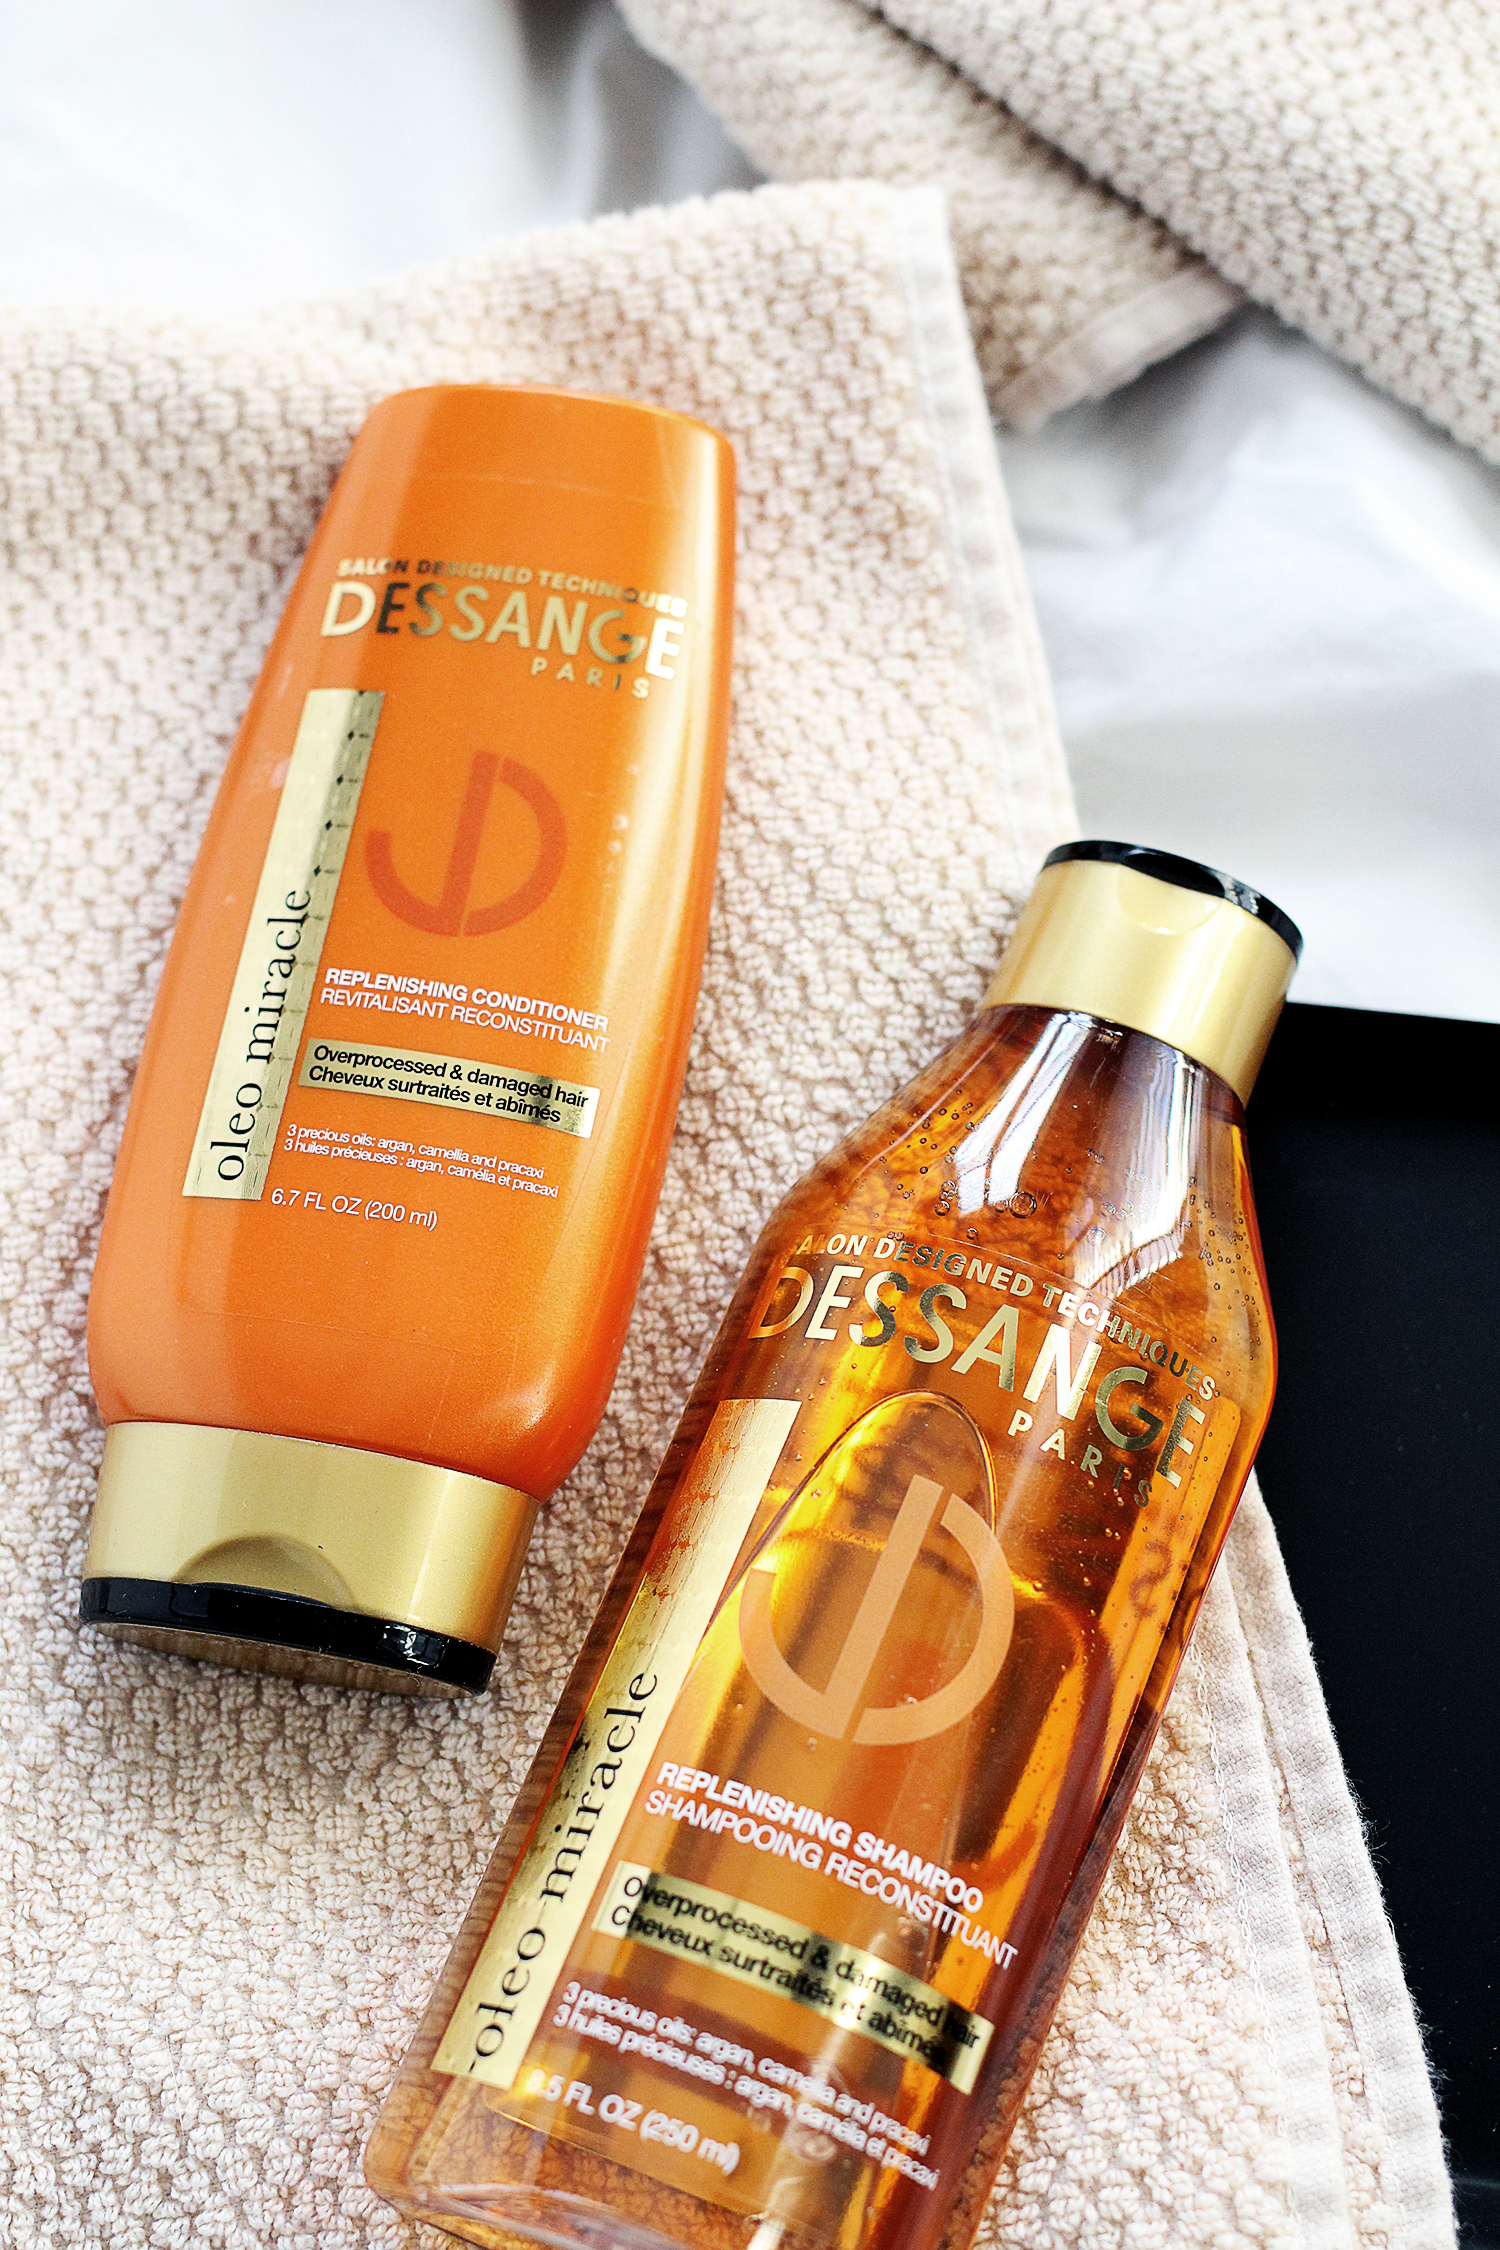 Shampoo and Conditioner for Overprocessed and Damaged Hair